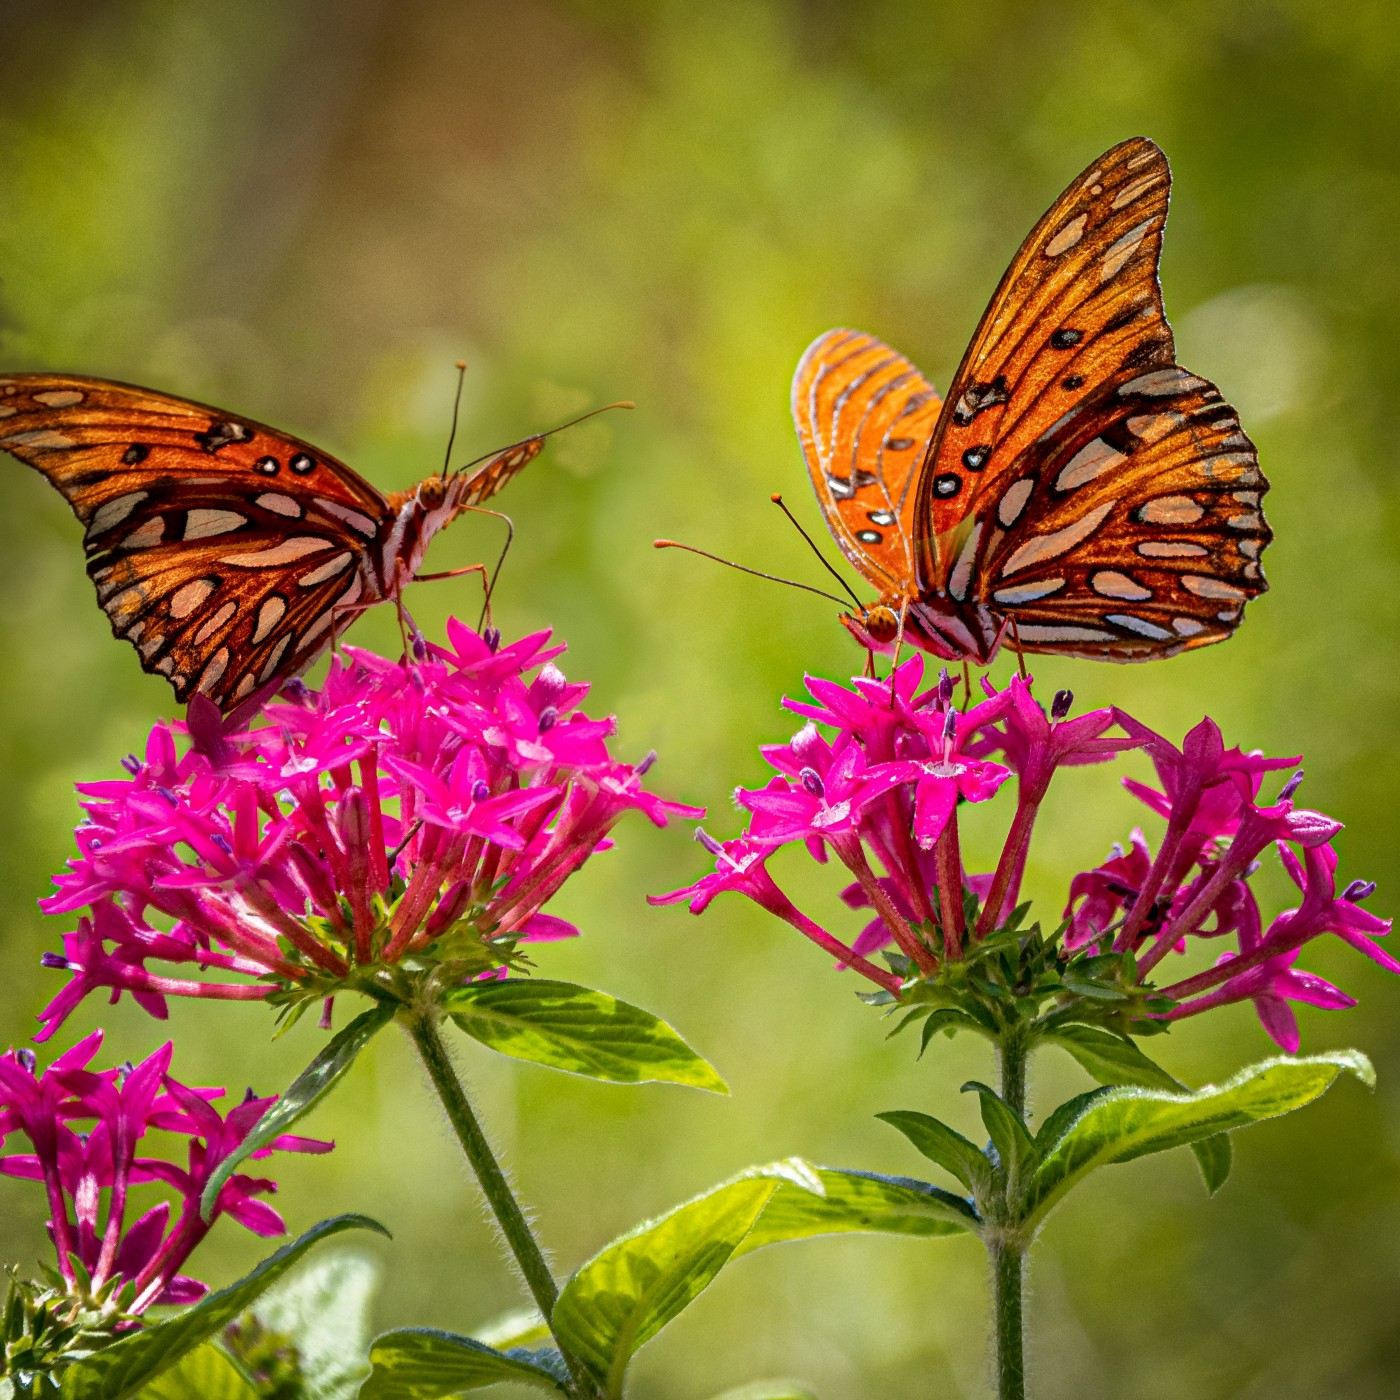 two orange and black butterflies resting on pink flowers